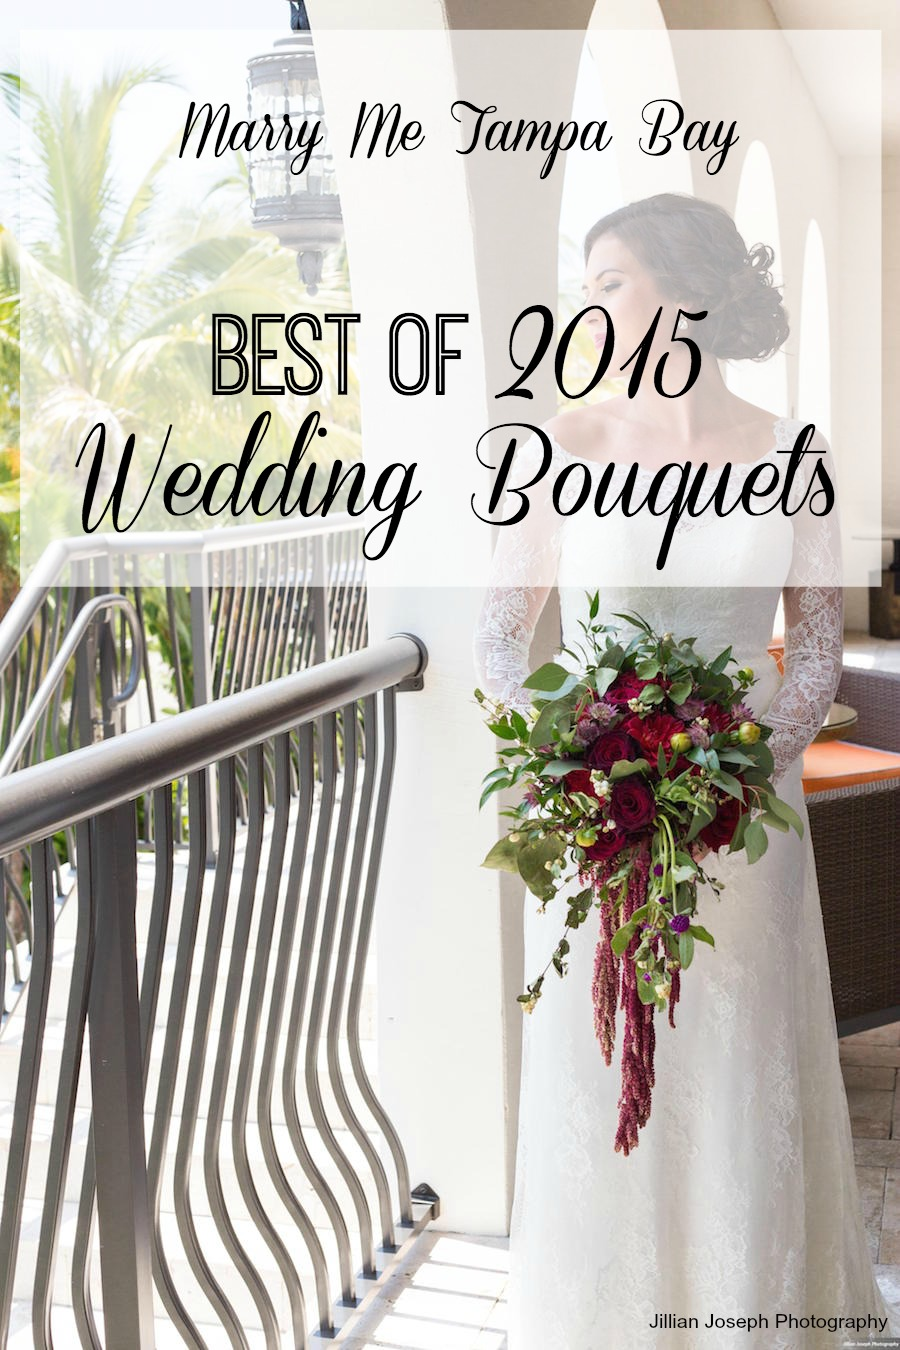 Marry Me Tampa Bay Wedding Best of 2015 - Tampa Bay Wedding Florist Bouquets